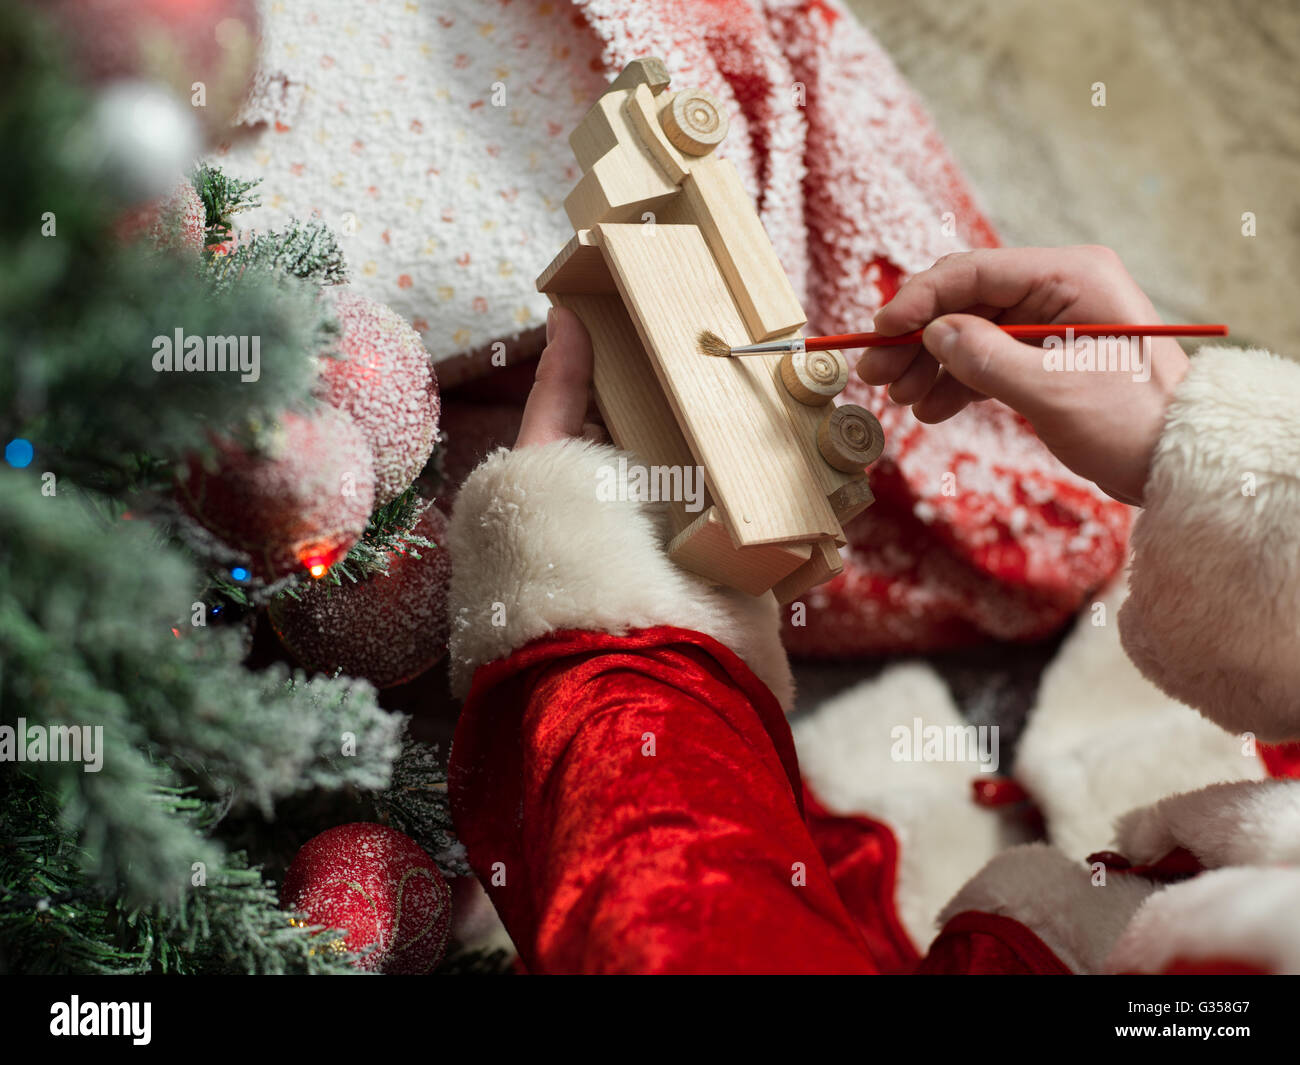 Santa Claus painting wooden toy with gouache - Stock Image